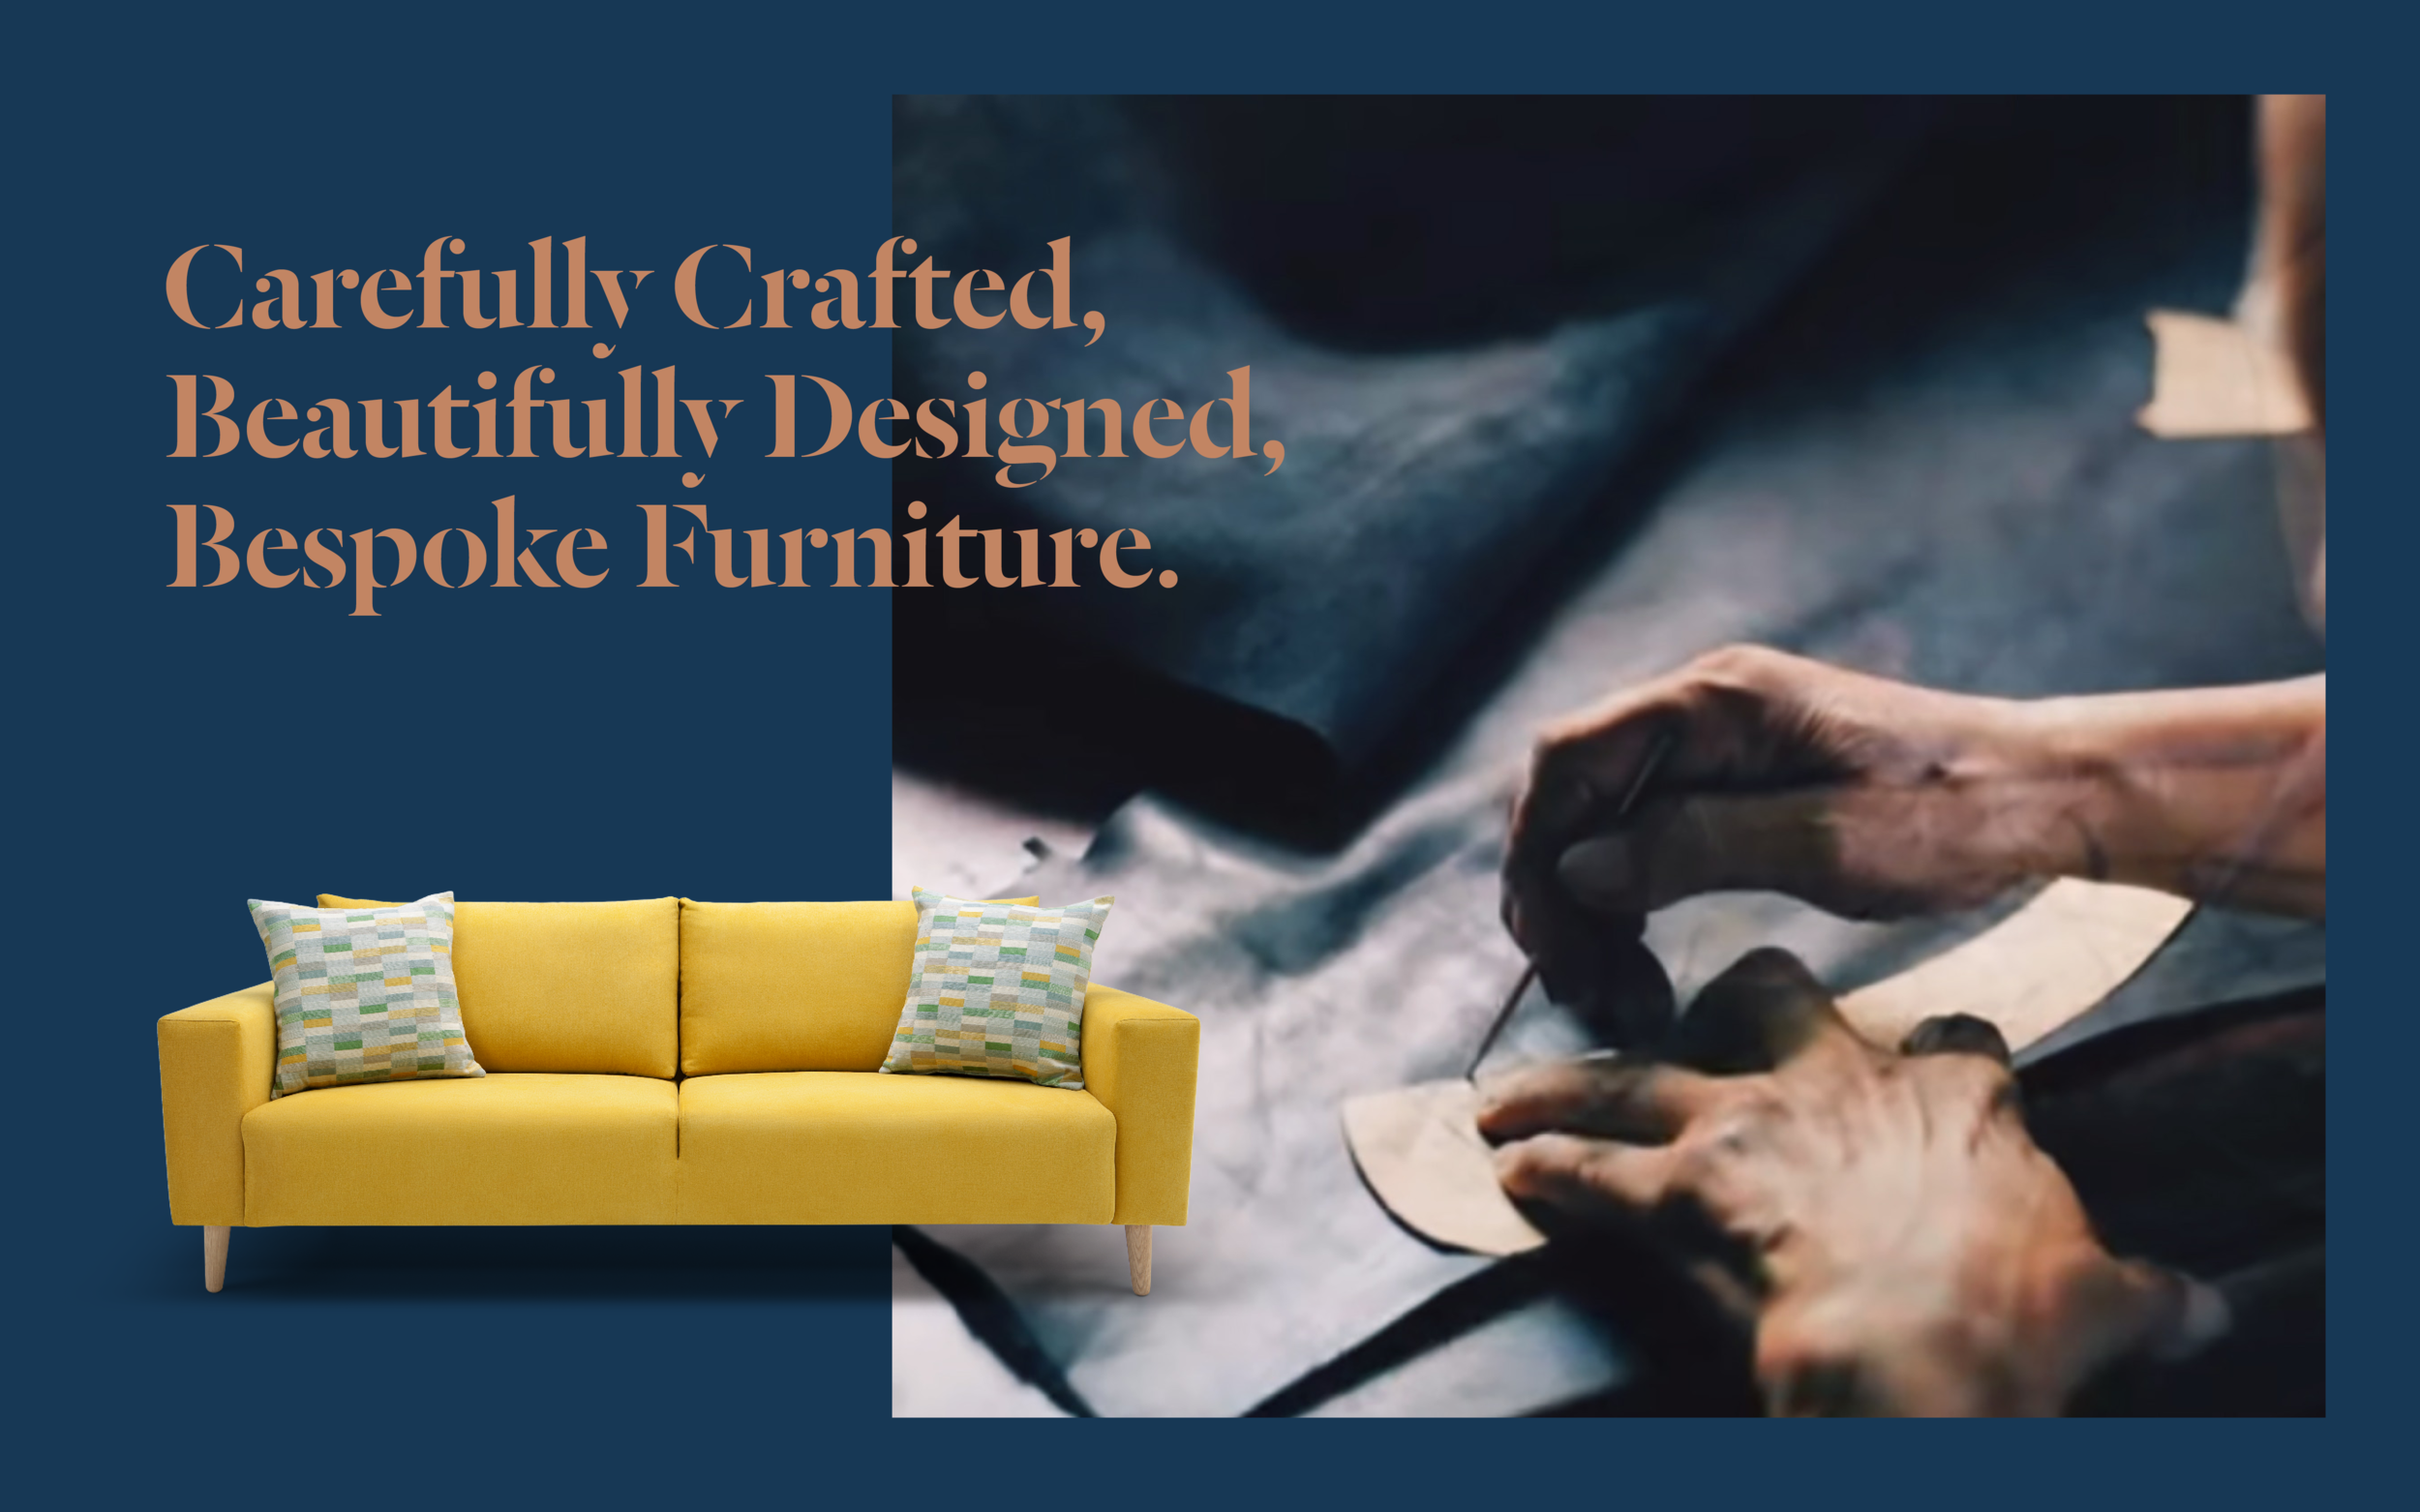 BS_RB FURNITURE7.png